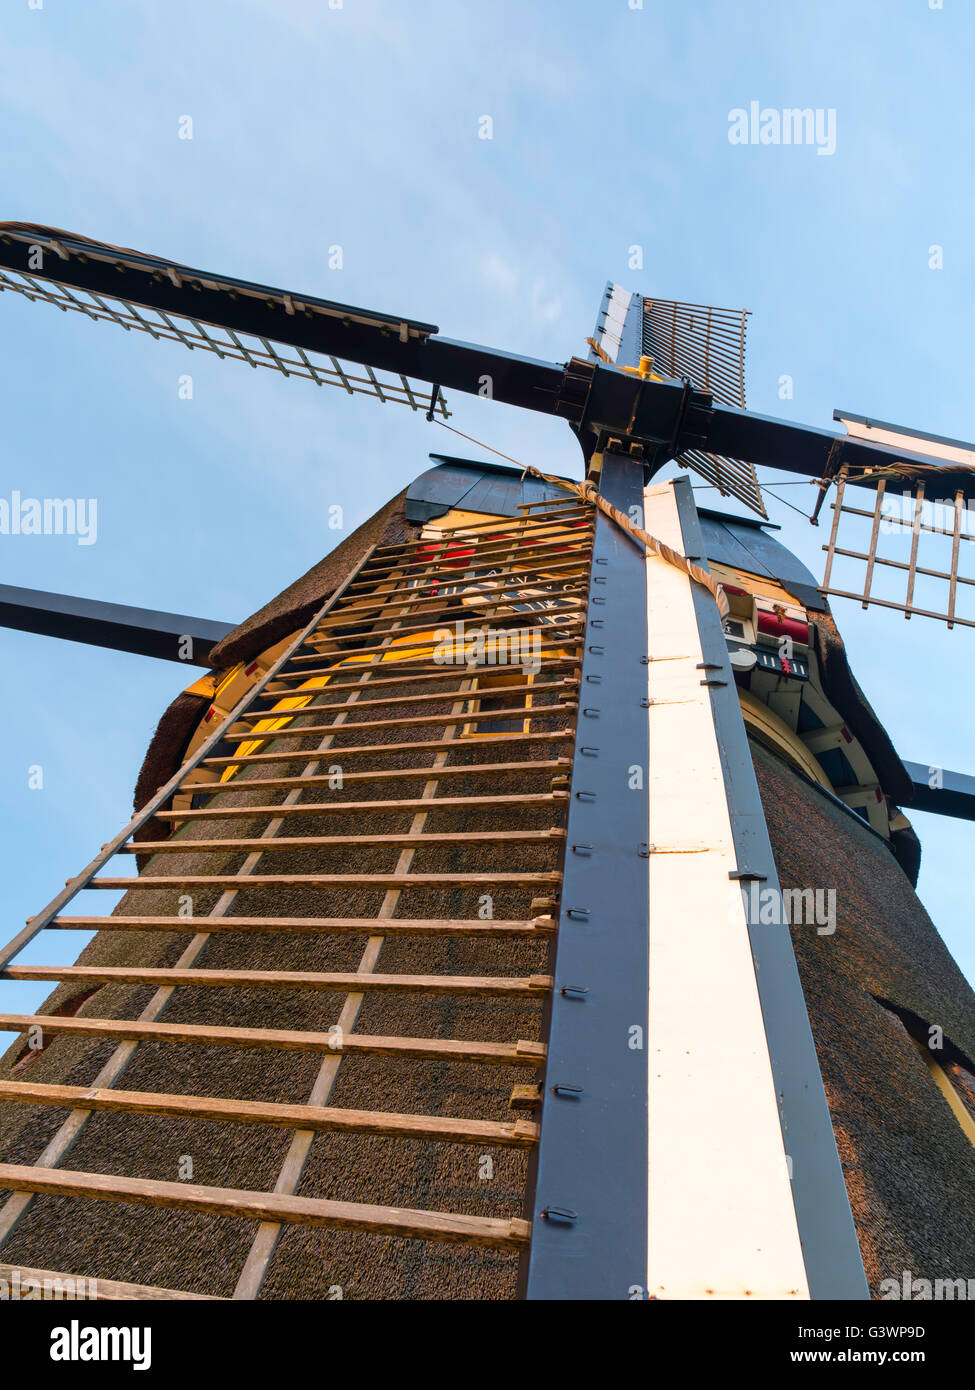 The famous Delphine/De Oostzijdse Molen windmill on the River Gein, near Abcoude, Utrecht, The Netherlands. Paintings - Stock Image